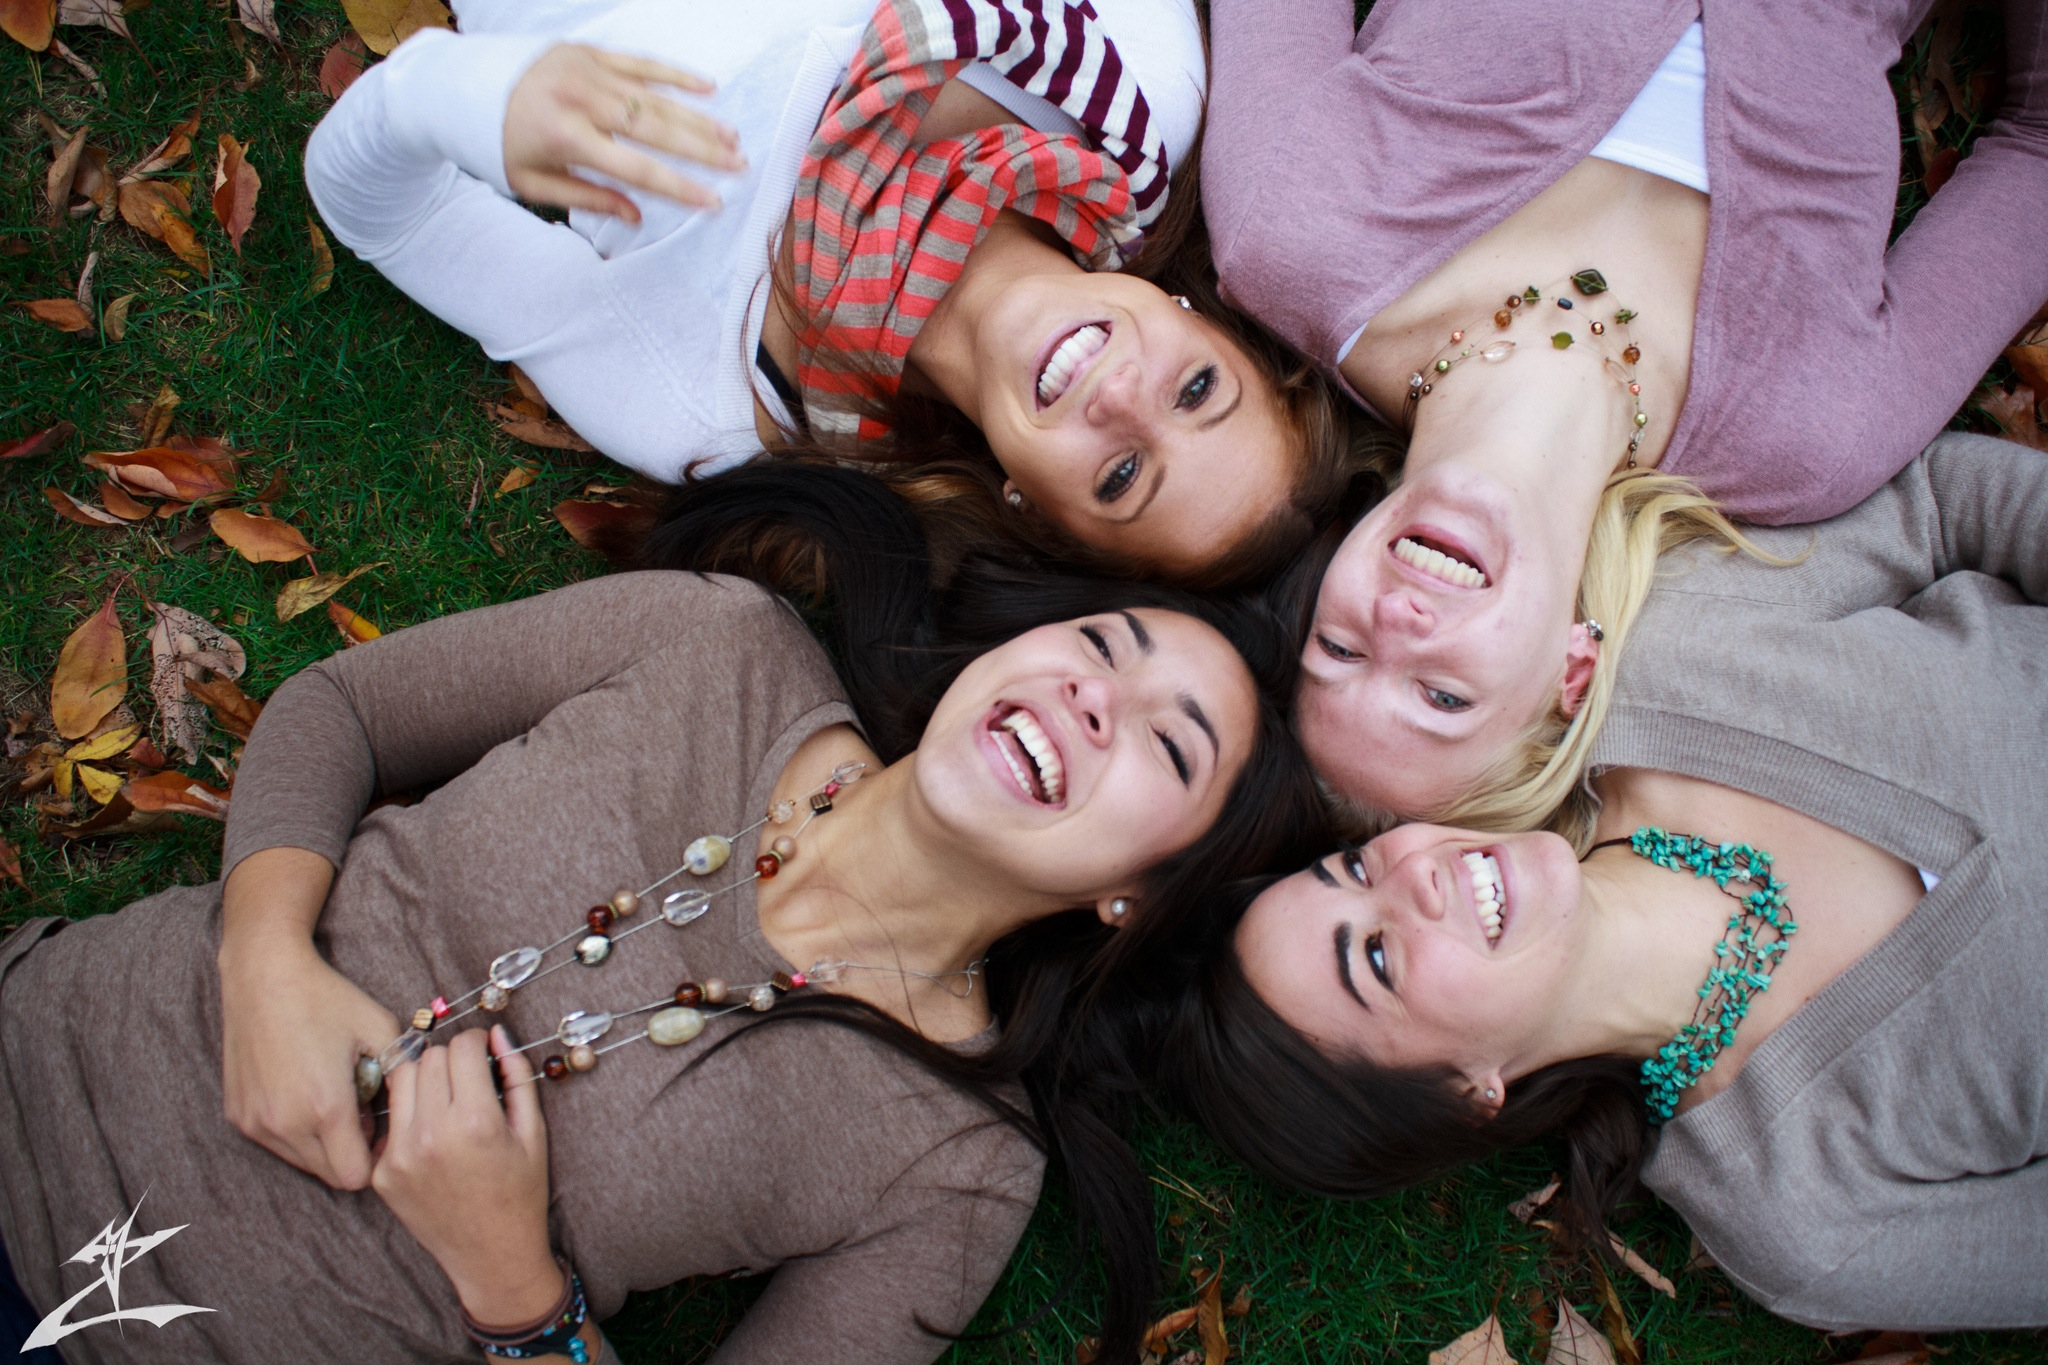 Four girls are laughing together